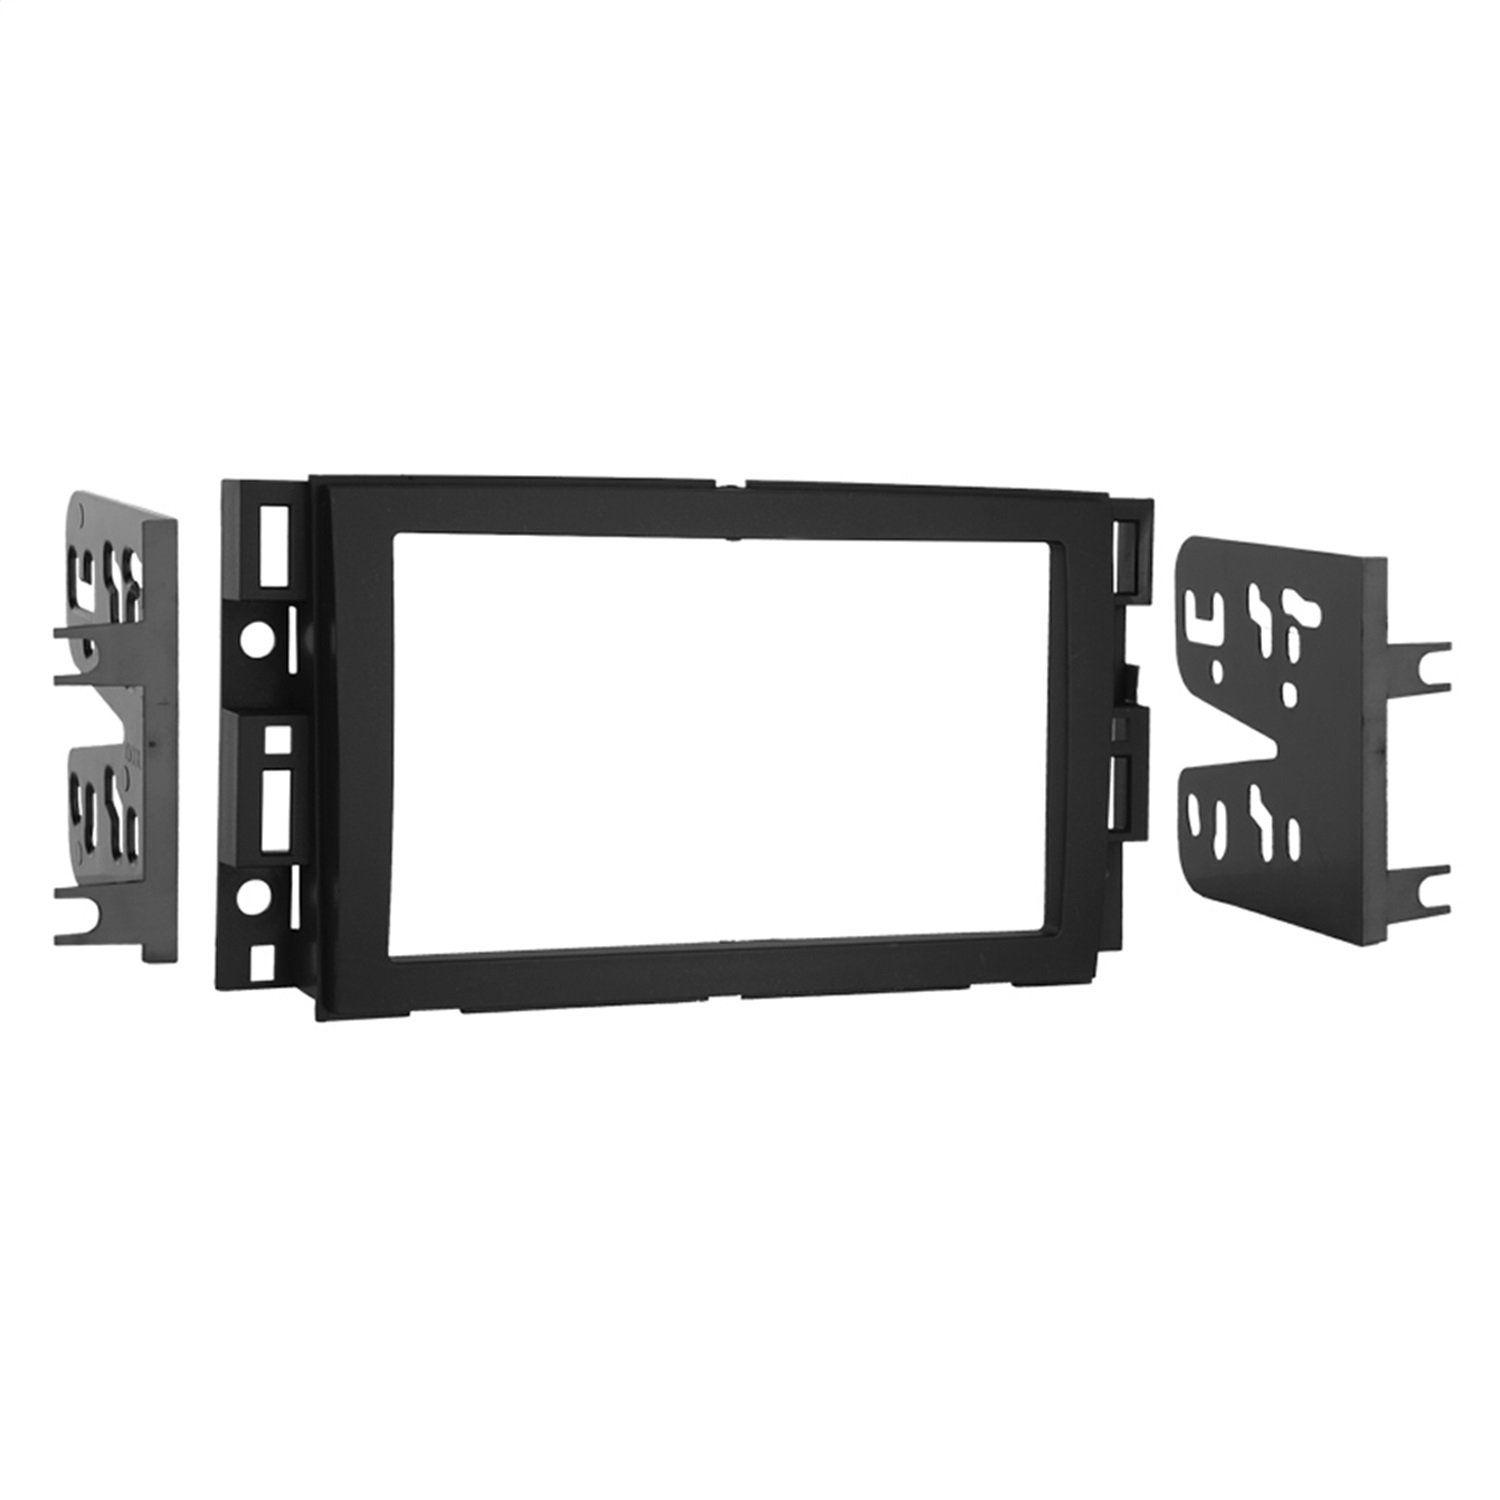 Metra 95-3305 Double DIN Installation Dash Kit for 2006-up Chevrolet Vehicles Metra Electronics Corporation